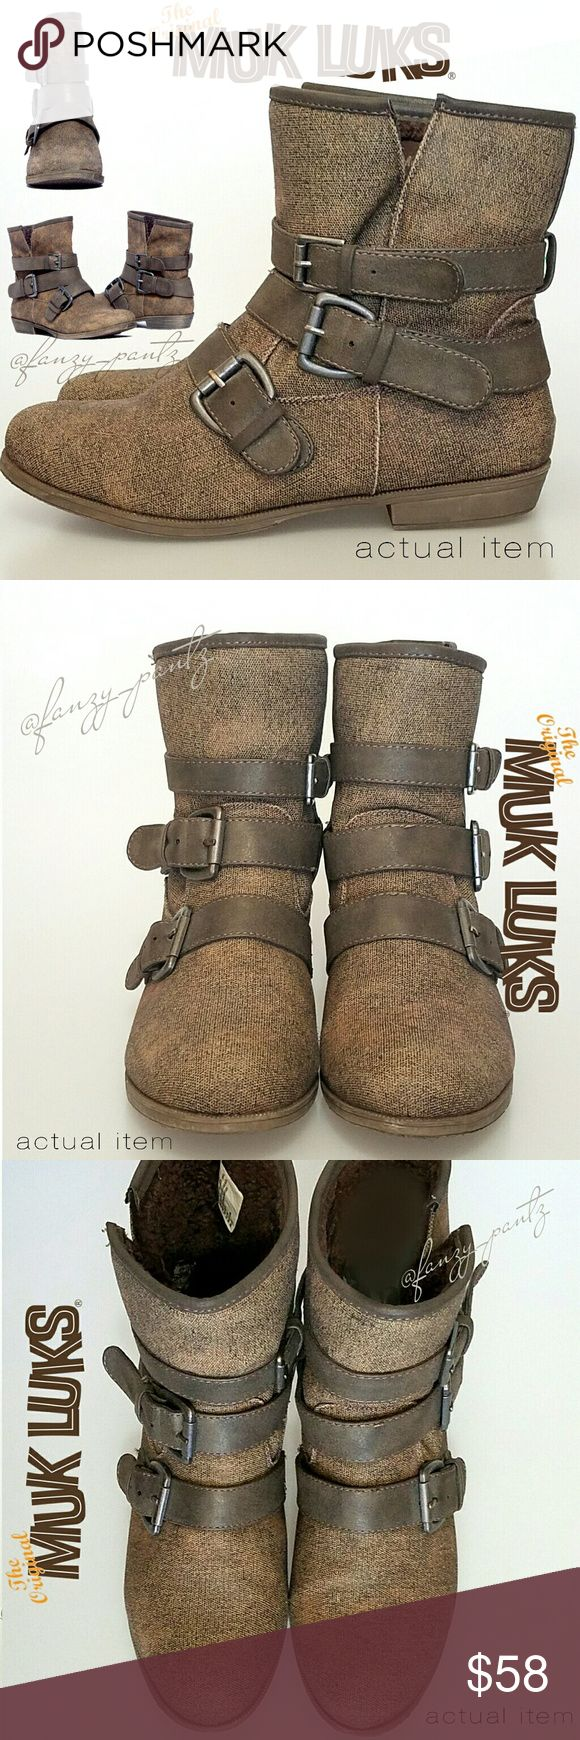 Muk Luk Hannah short buckle ankle boots size 8 Muk Luk boots ~ Hannah ~ brown ~ triple buckle ~ pull on ~ faux sherling lambswool interior lining ~ tweed-like canvas exterior ~  size 8 (on inside tag, shown in photo 7) ~ excellent condition with light wear  on bottom sole  💥details are provided in the last photo   ❌NO trades  ✔REASONABLE offers welcome                   or  ❤hit ' add to bundle '  for a special, no obligation offer. . . just for you! ❤ Muk Luks Shoes Winter & Rain Boots